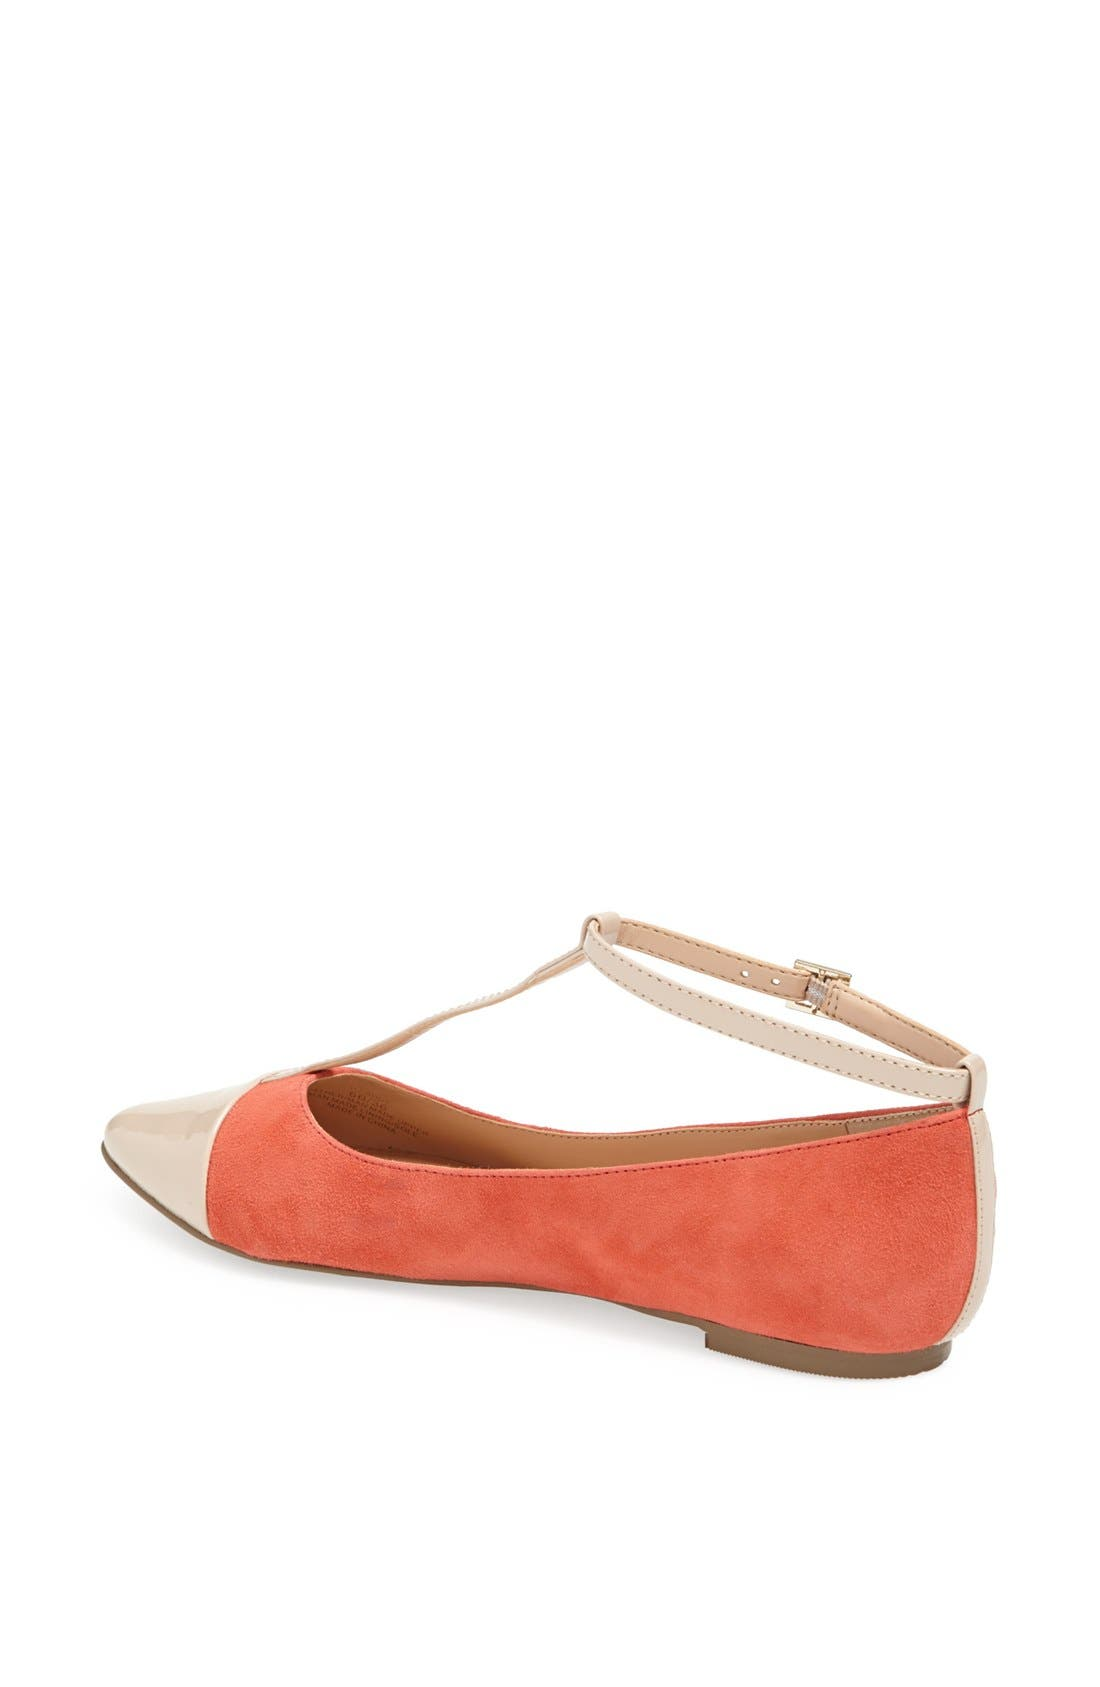 ,                             Julianne Hough for Sole Society 'Addy' Flat,                             Alternate thumbnail 47, color,                             840